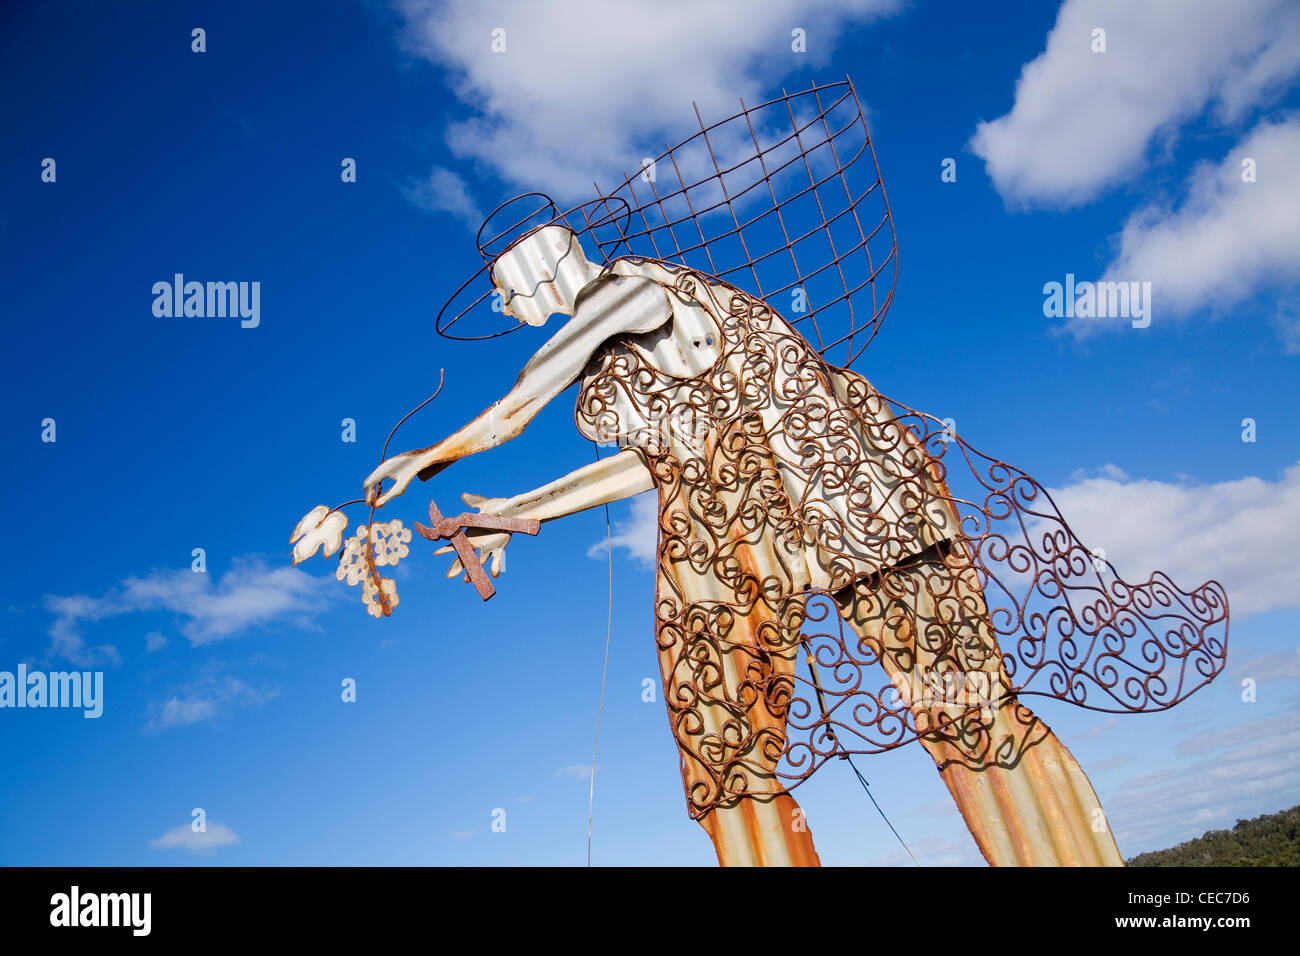 Grape harvesting sculpture.  Margaret River, Western Australia, AUSTRALIA - Stock Image